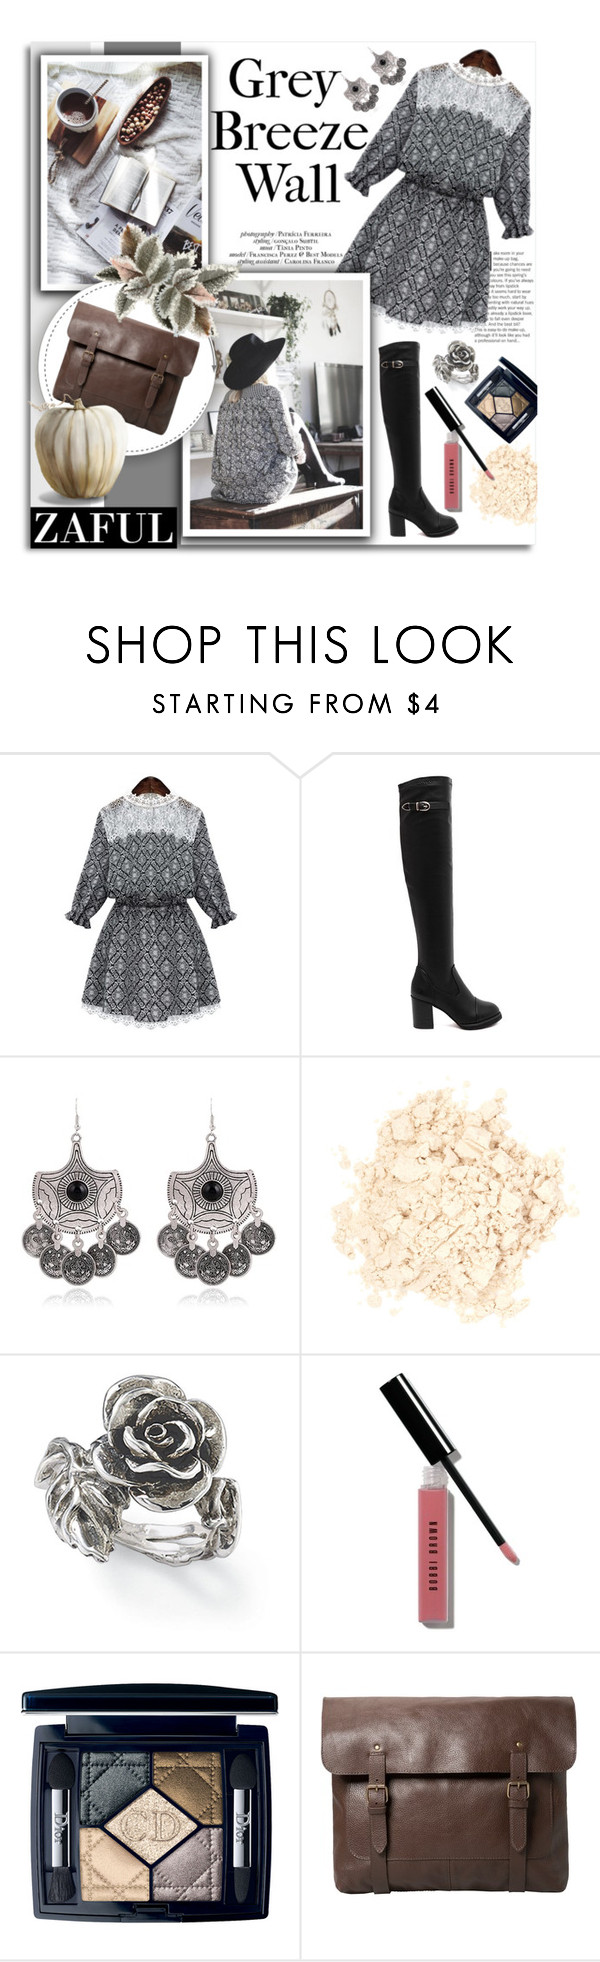 """Zaful 60"" by melissa-de-souza ❤ liked on Polyvore featuring Laura Mercier, Bobbi Brown Cosmetics, Christian Dior, MANGO and zaful"